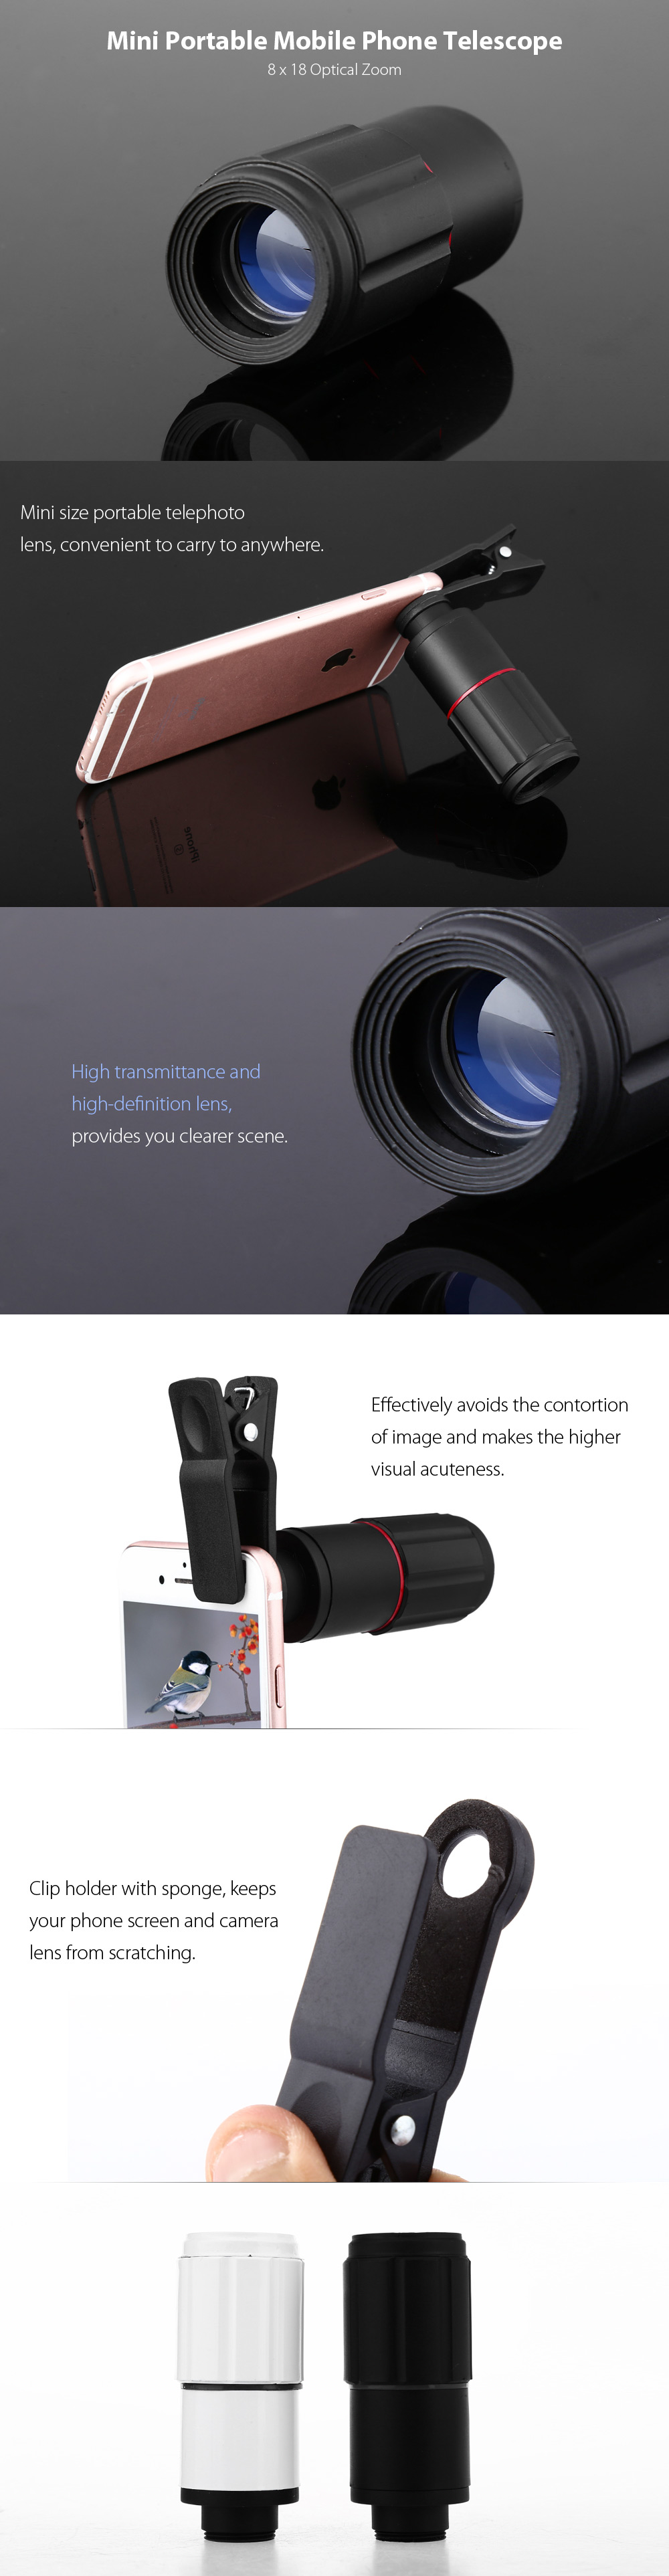 8 X 18 Optical Zoom Mobile Phone Telescope 686 Free Shipping Lens 8x With Universal Clamp Black Mini Portable Telephoto White 77mmx32mm